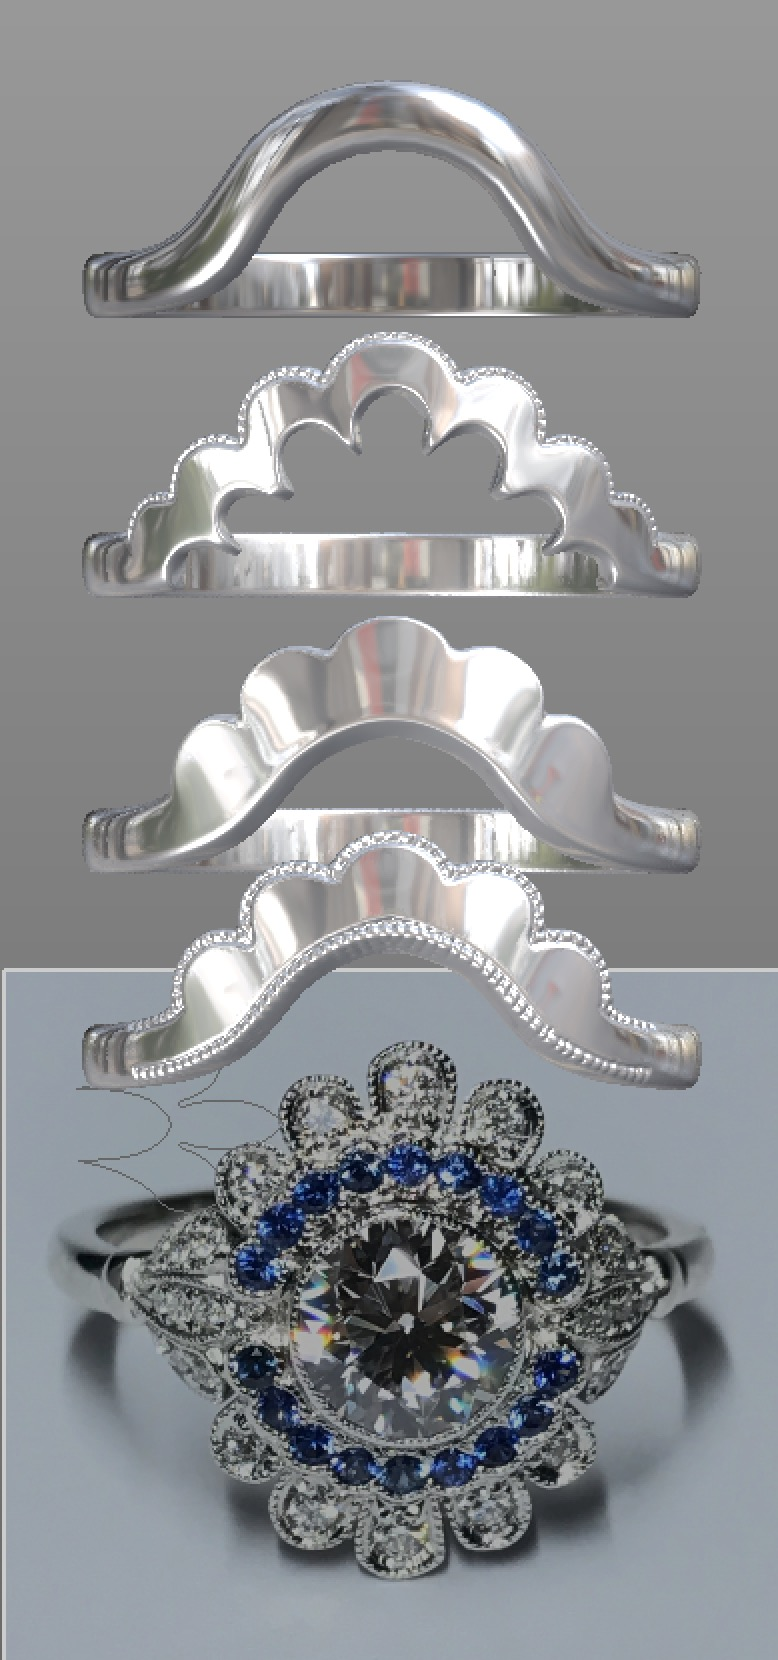 Copy of Options for a fancy shaped shaped and fitted wedding ring, this time using just the photograph (ok for just a design idea but not for a correct fit).